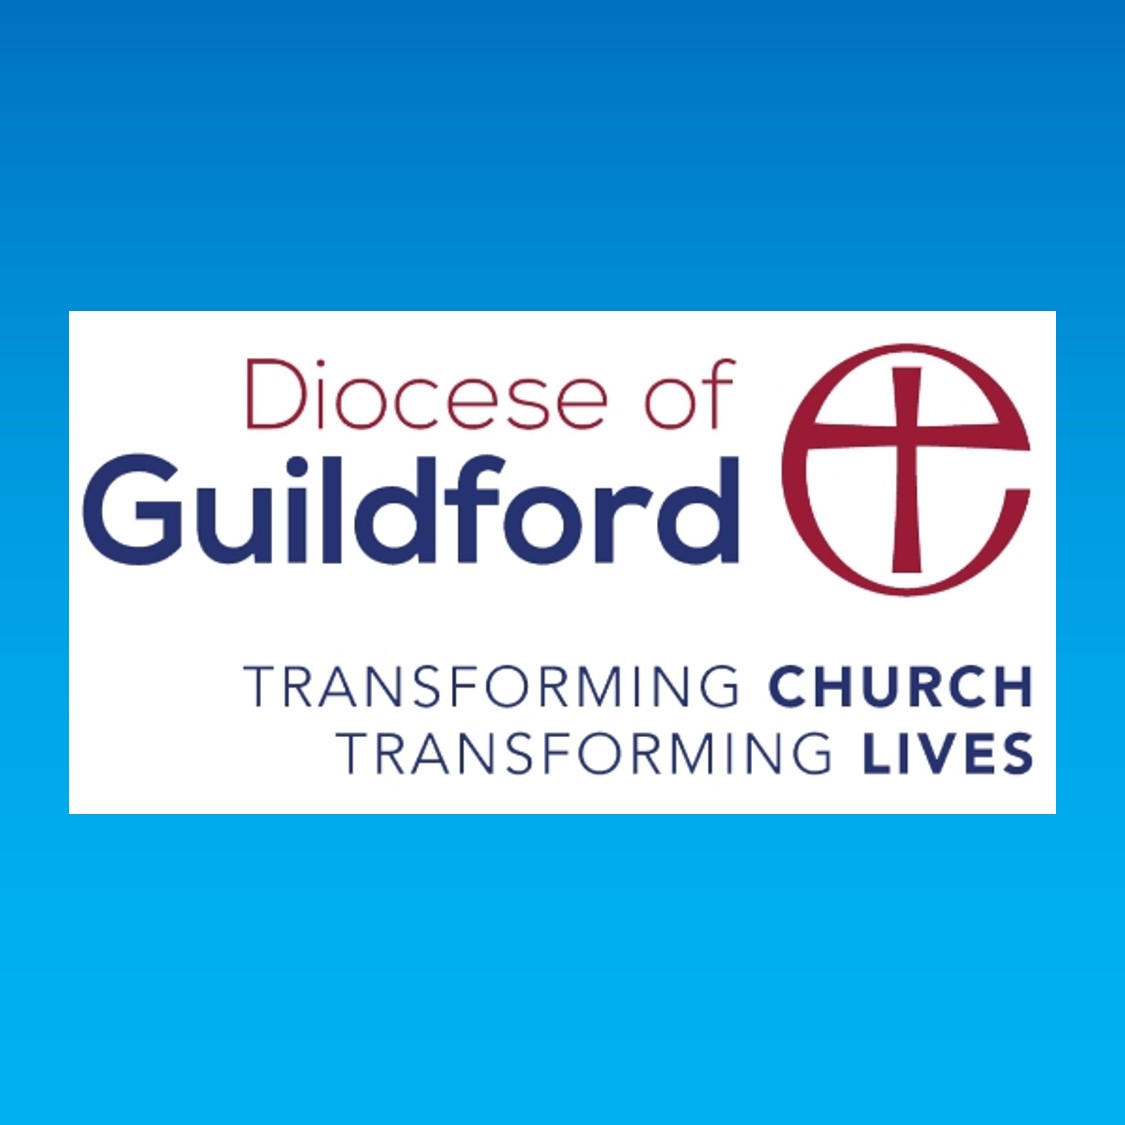 *Guildford Diocese*We are part of the Diocese of Guildford, part of the Church of England and the worldwide Anglican Communion. The diocese has 162 parishes, 85 church schools and several hundred social and community projects, and straddles the North Downs, from tiny rural communities to the busy commuter towns, with areas of challenging social deprivation and great affluence in sharp contrast.  It has over a million people and has 217 church buildings which see more than 25,000 people worshipping on an average Sunday, in addition to many thousands more of all ages who use our buildings and join in mid-week activities.  Find out more at cofeguildford.org.uk or contact Martin Wainwright martinw@saintpauls.co.uk